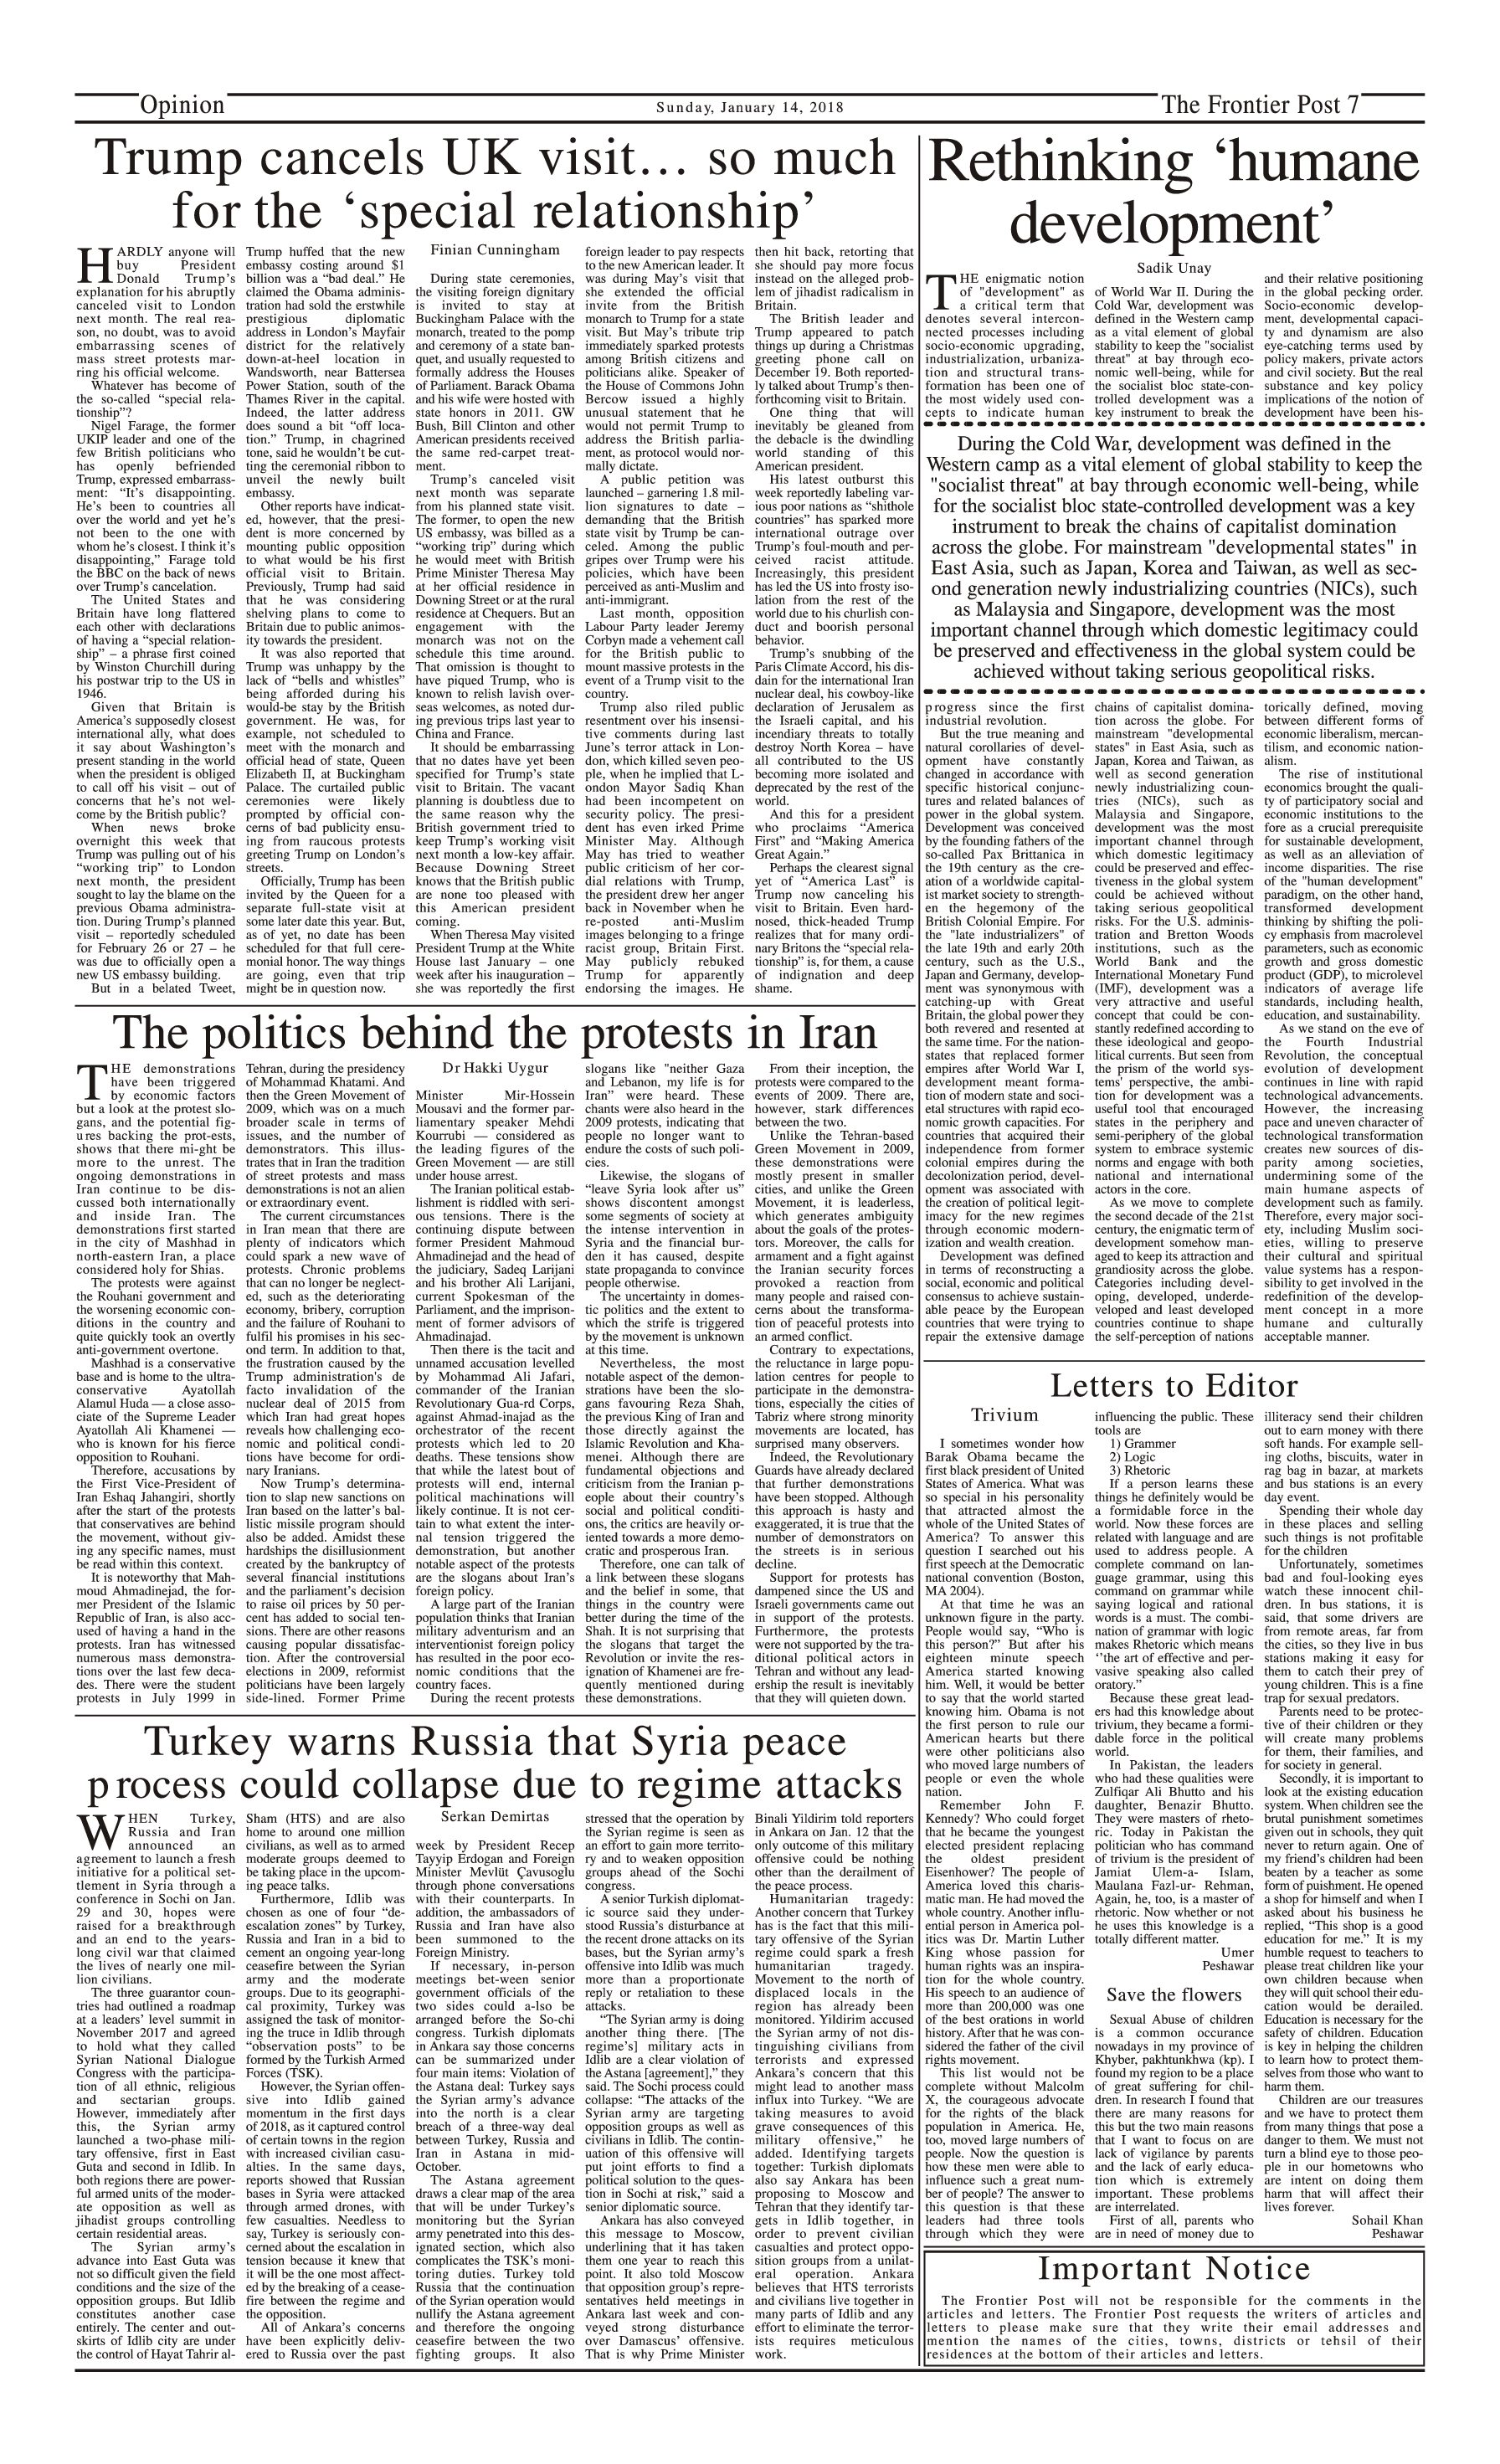 Opinion Page 14-1